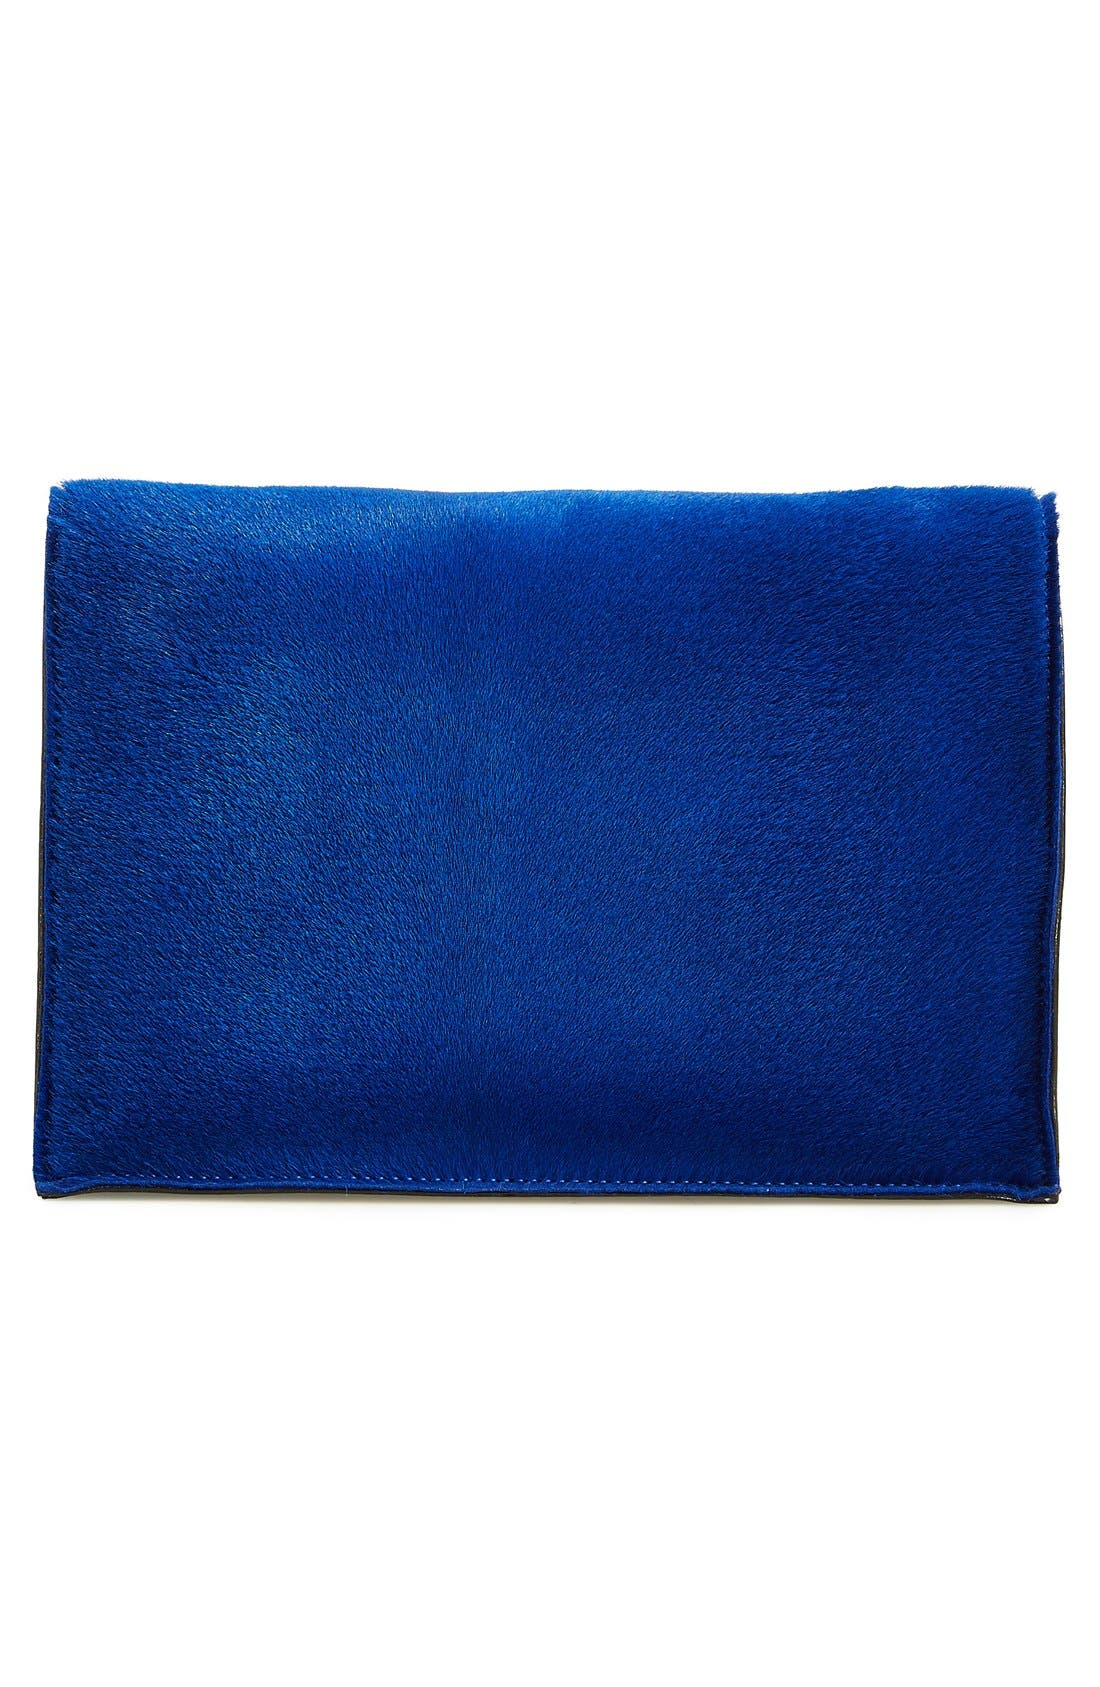 Alternate Image 4  - Proenza Schouler 'Lunch Bag - Small' Shearling & Leather Clutch